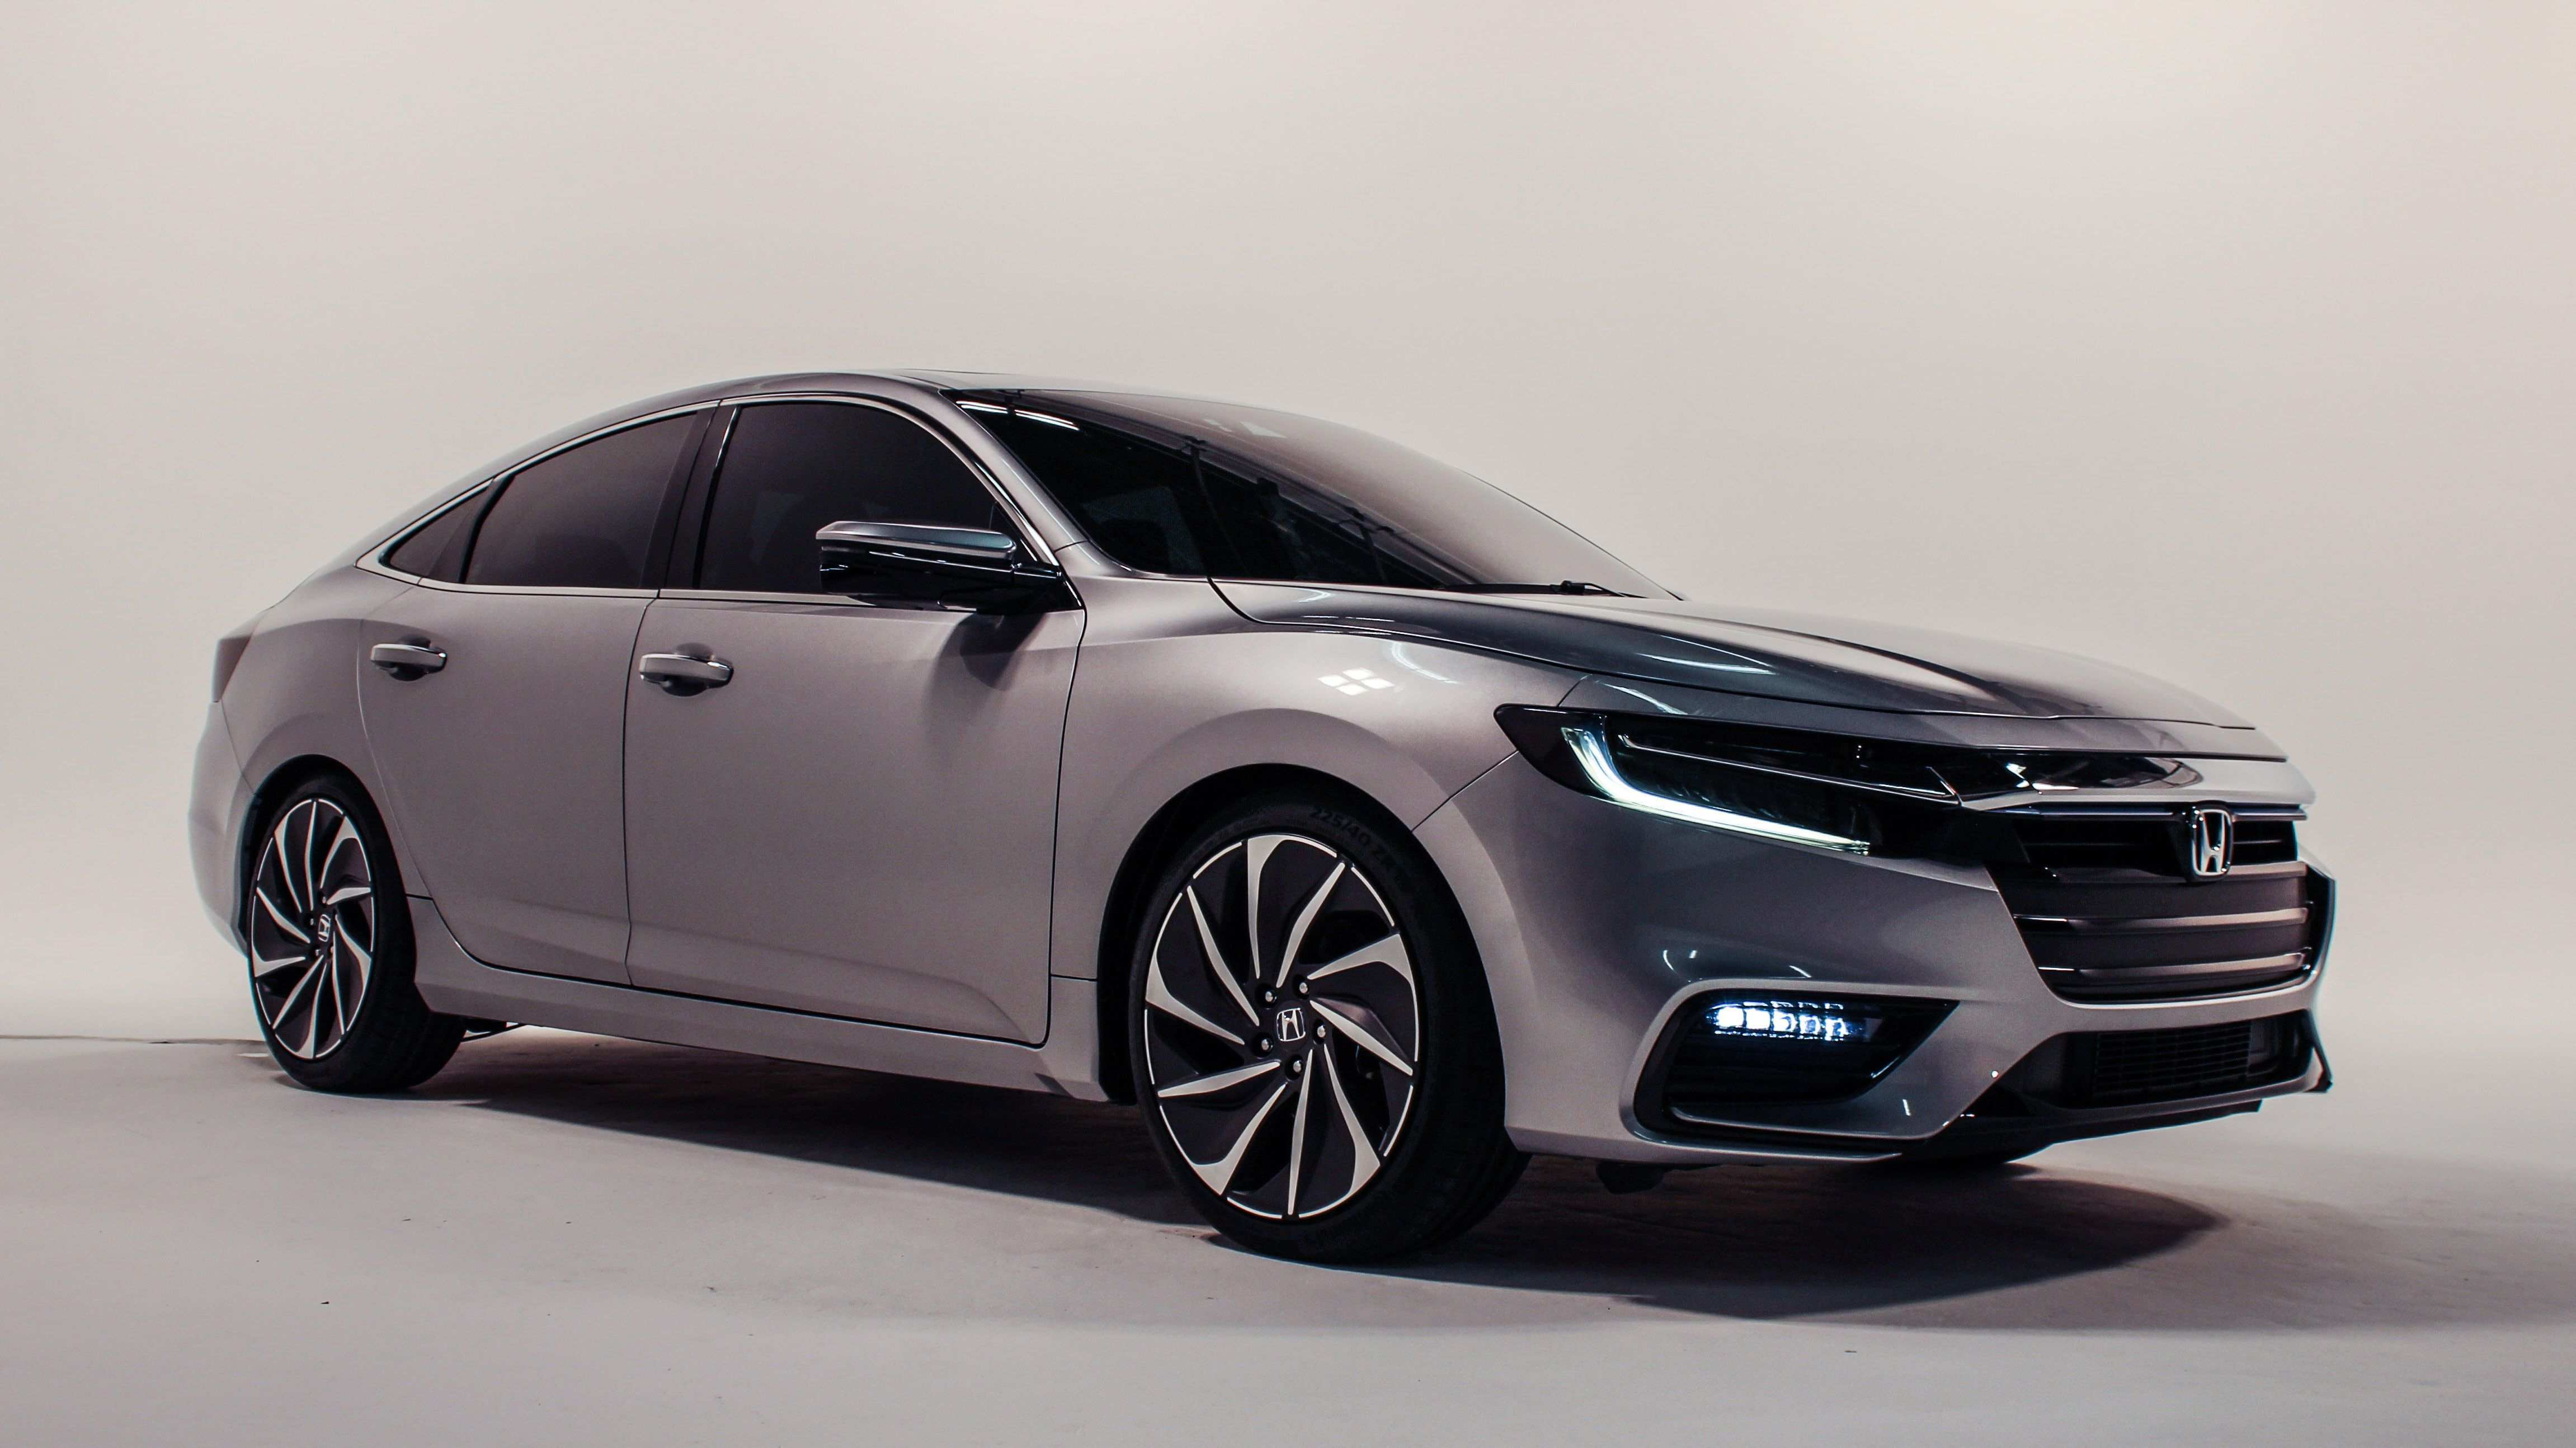 85 Best Review 2019 Honda Civic Hybrid New Concept with 2019 Honda Civic Hybrid